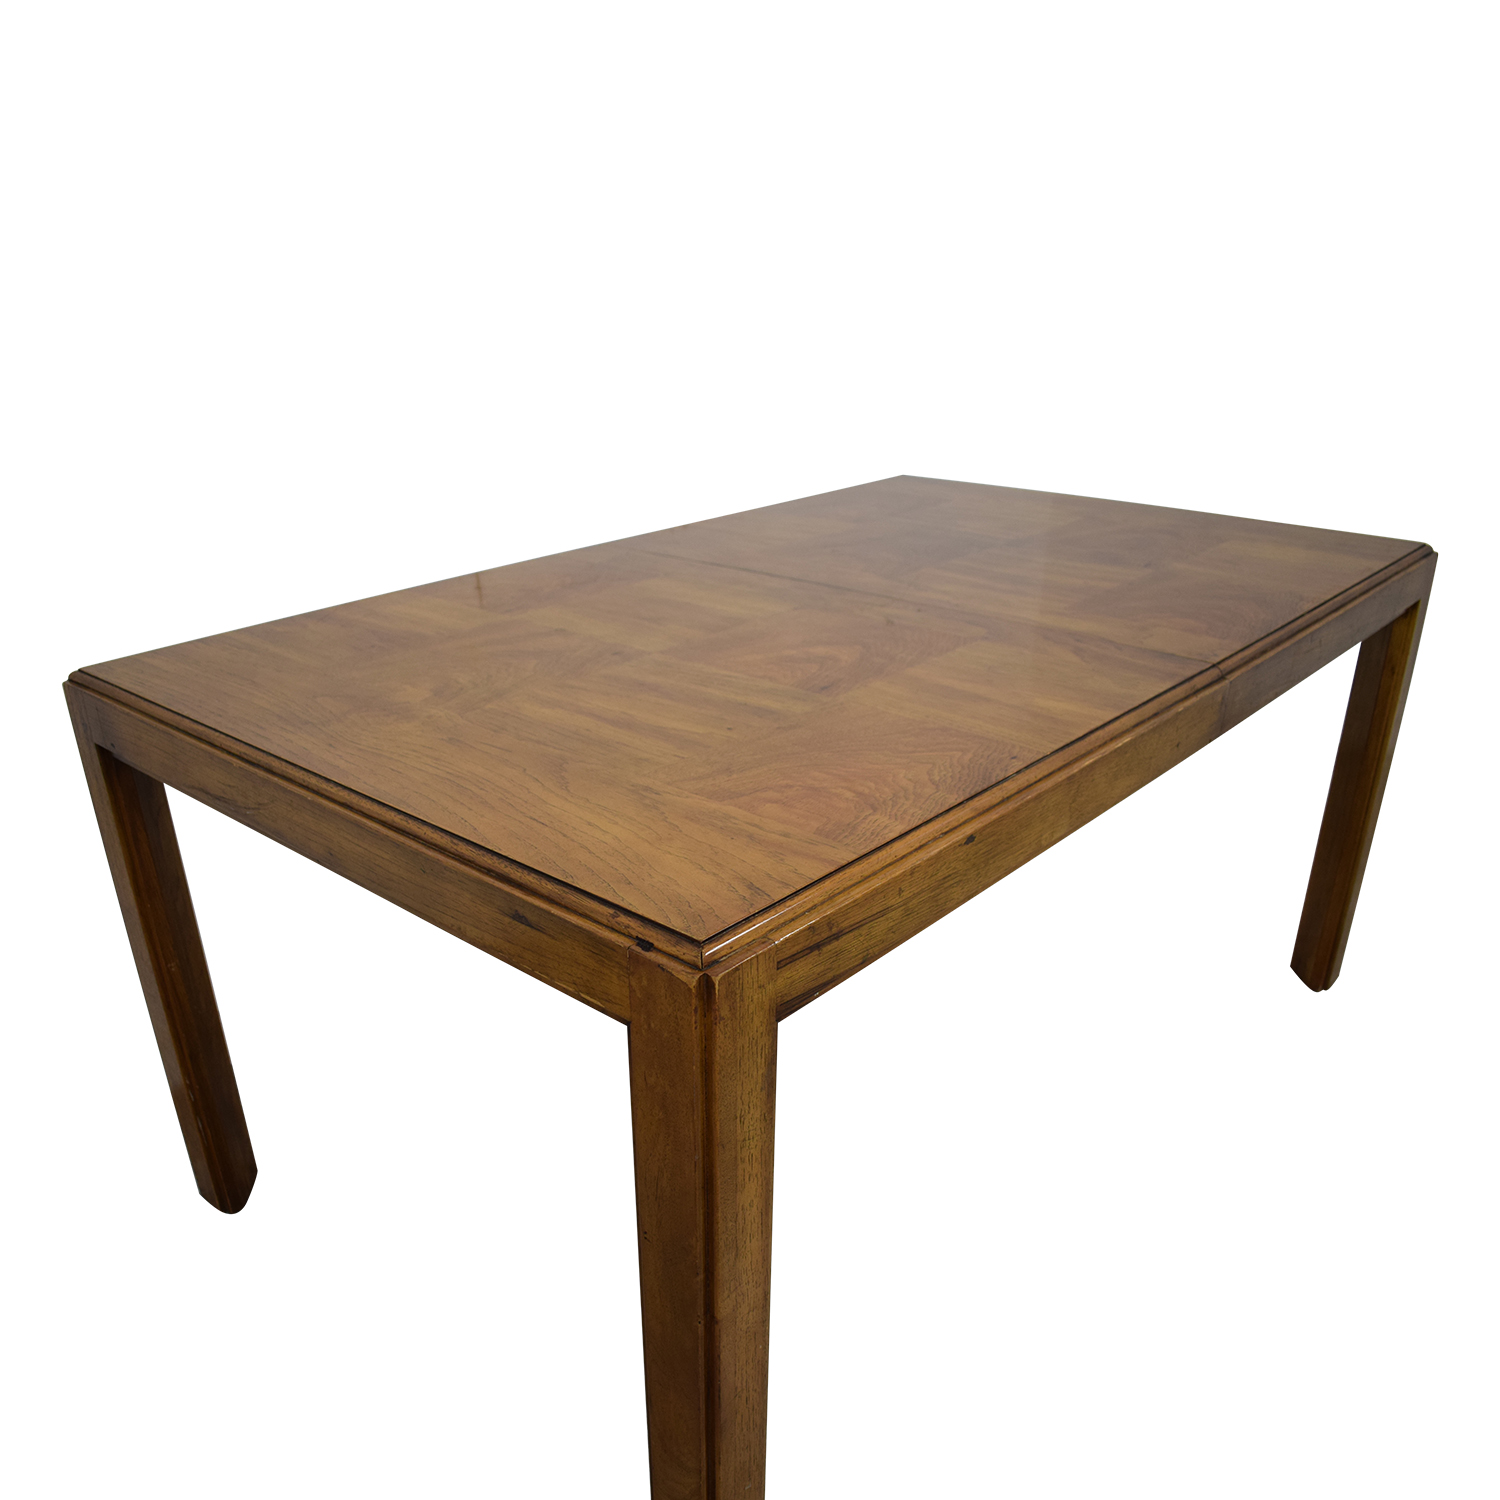 79% OFF   Drexel Heritage Drexel Heritage Dining Table / Tables